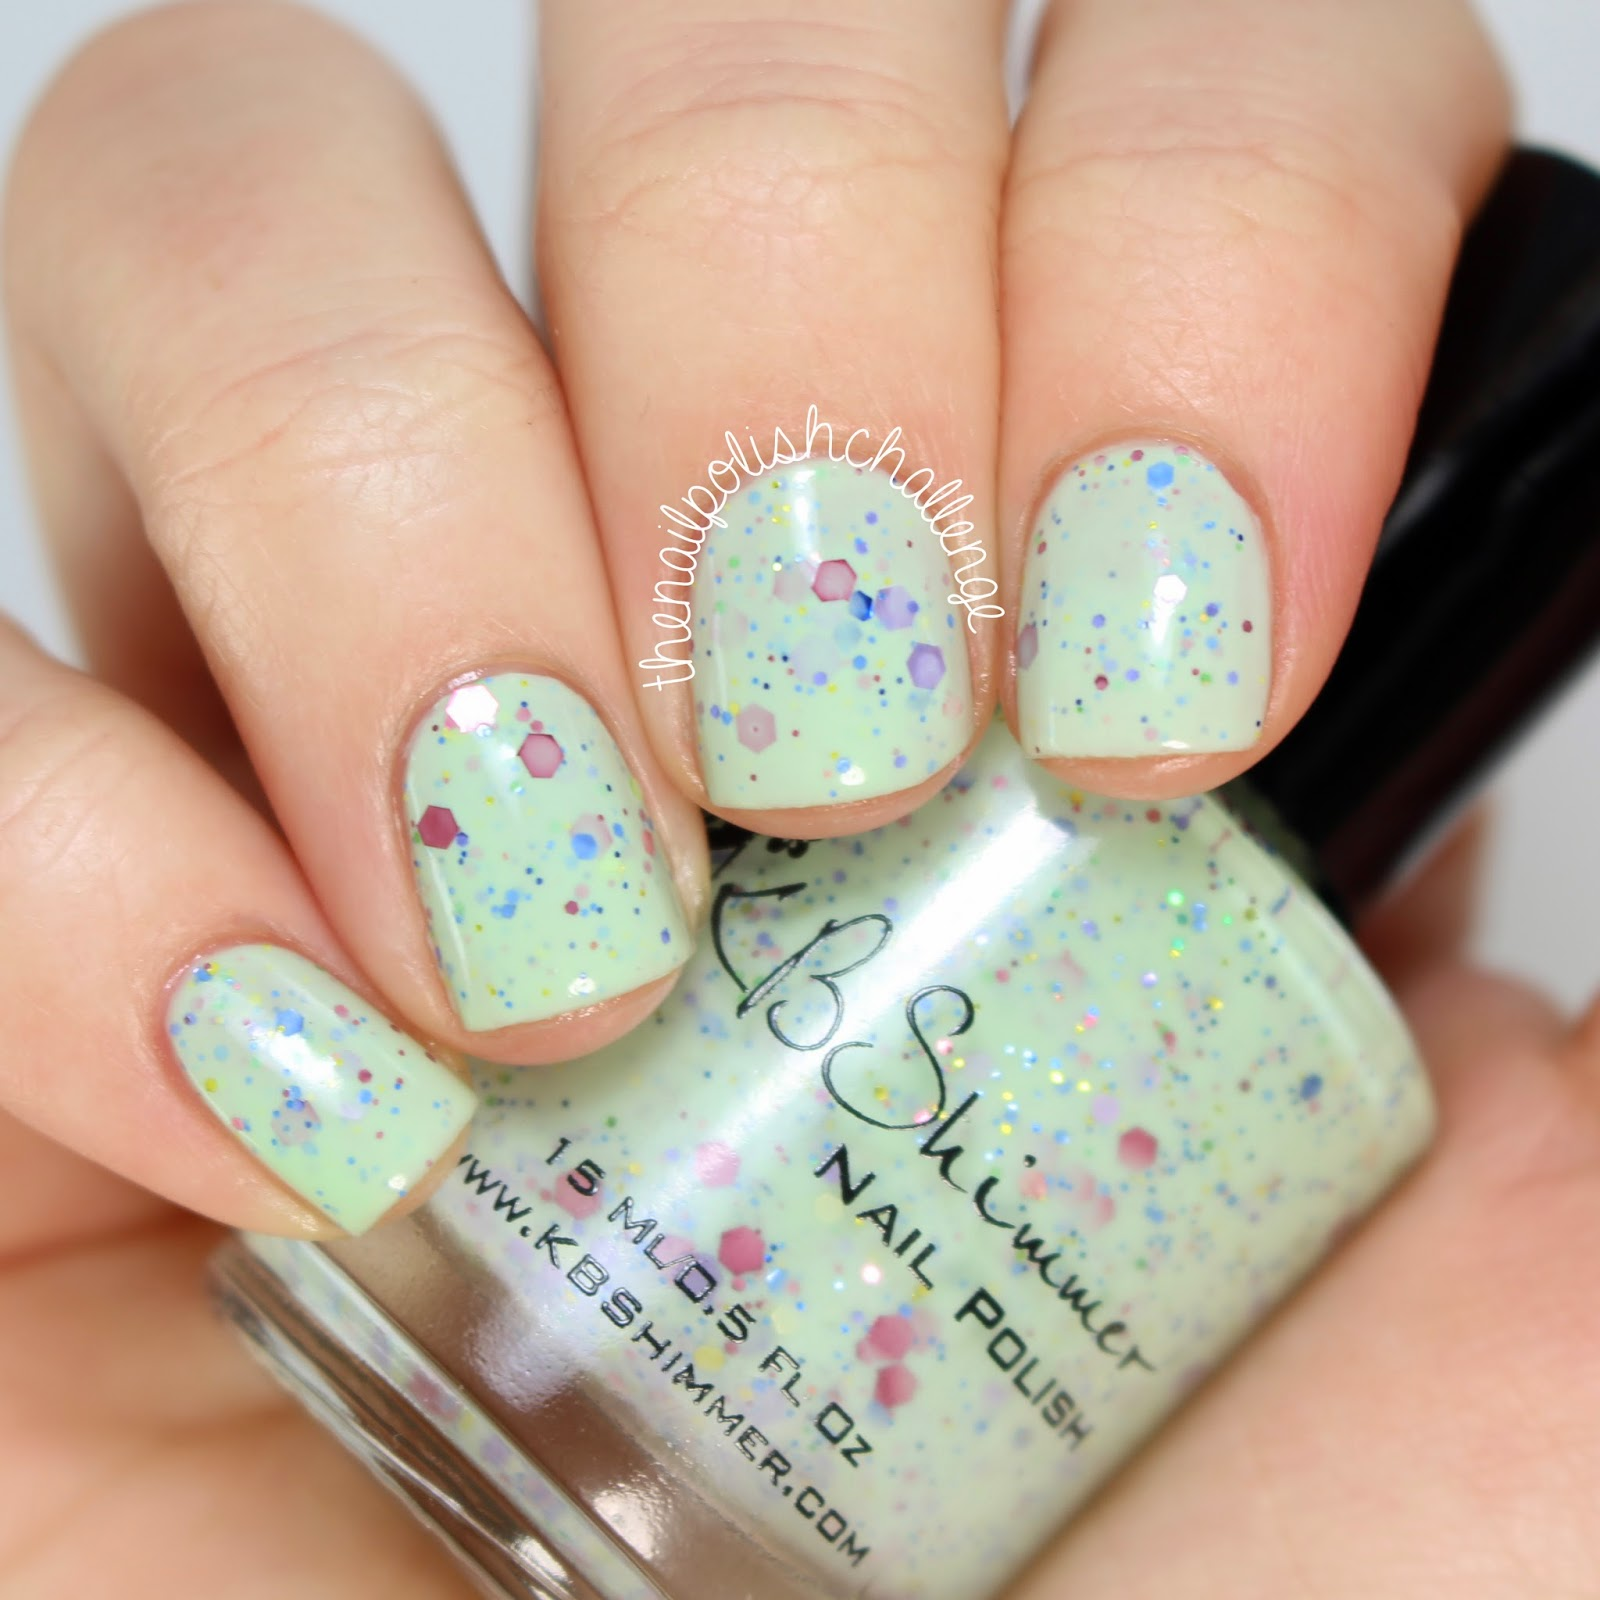 KBShimmer Spring 2013 Collection and Swatches | The Nail Polish ...